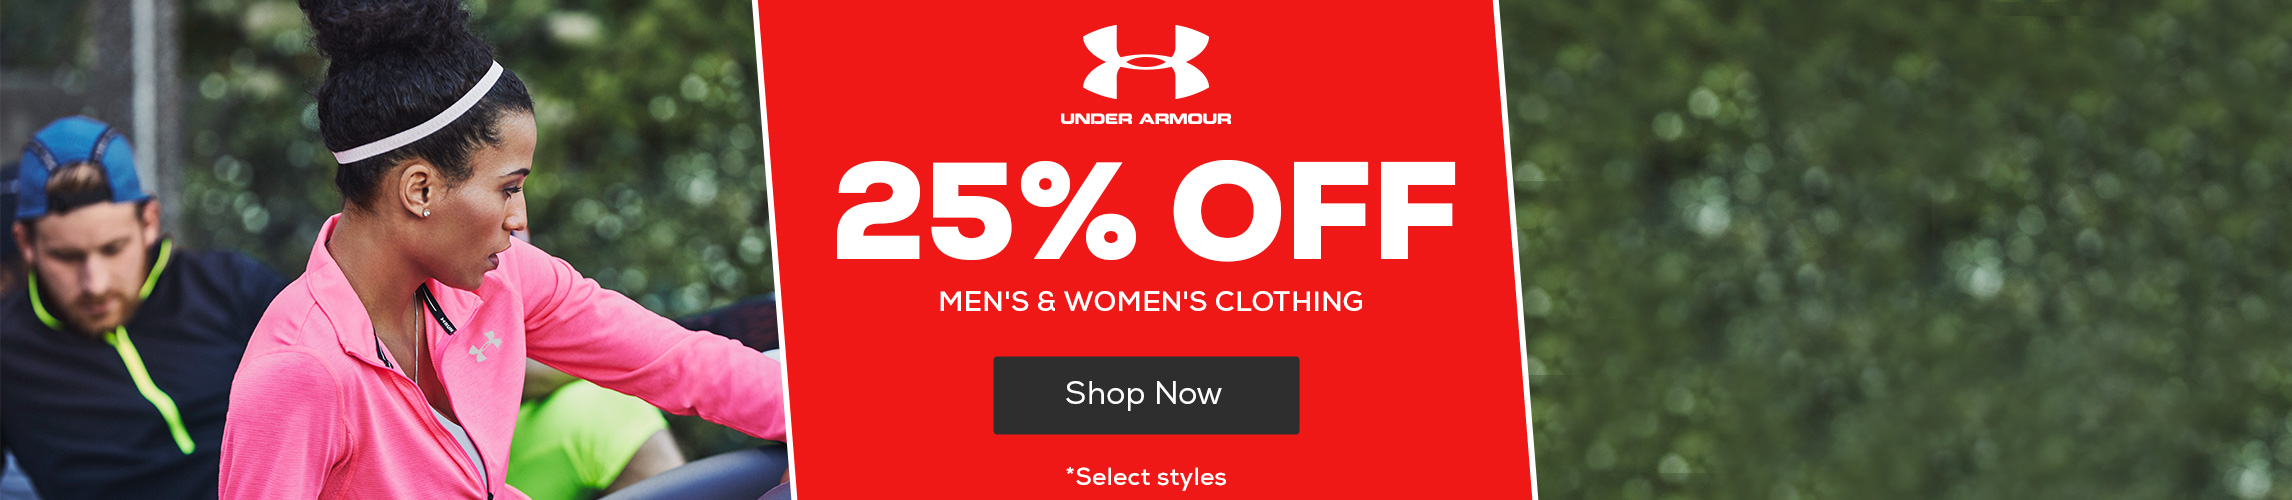 Under Armour 25% Off *select styles for men's & women's clothing